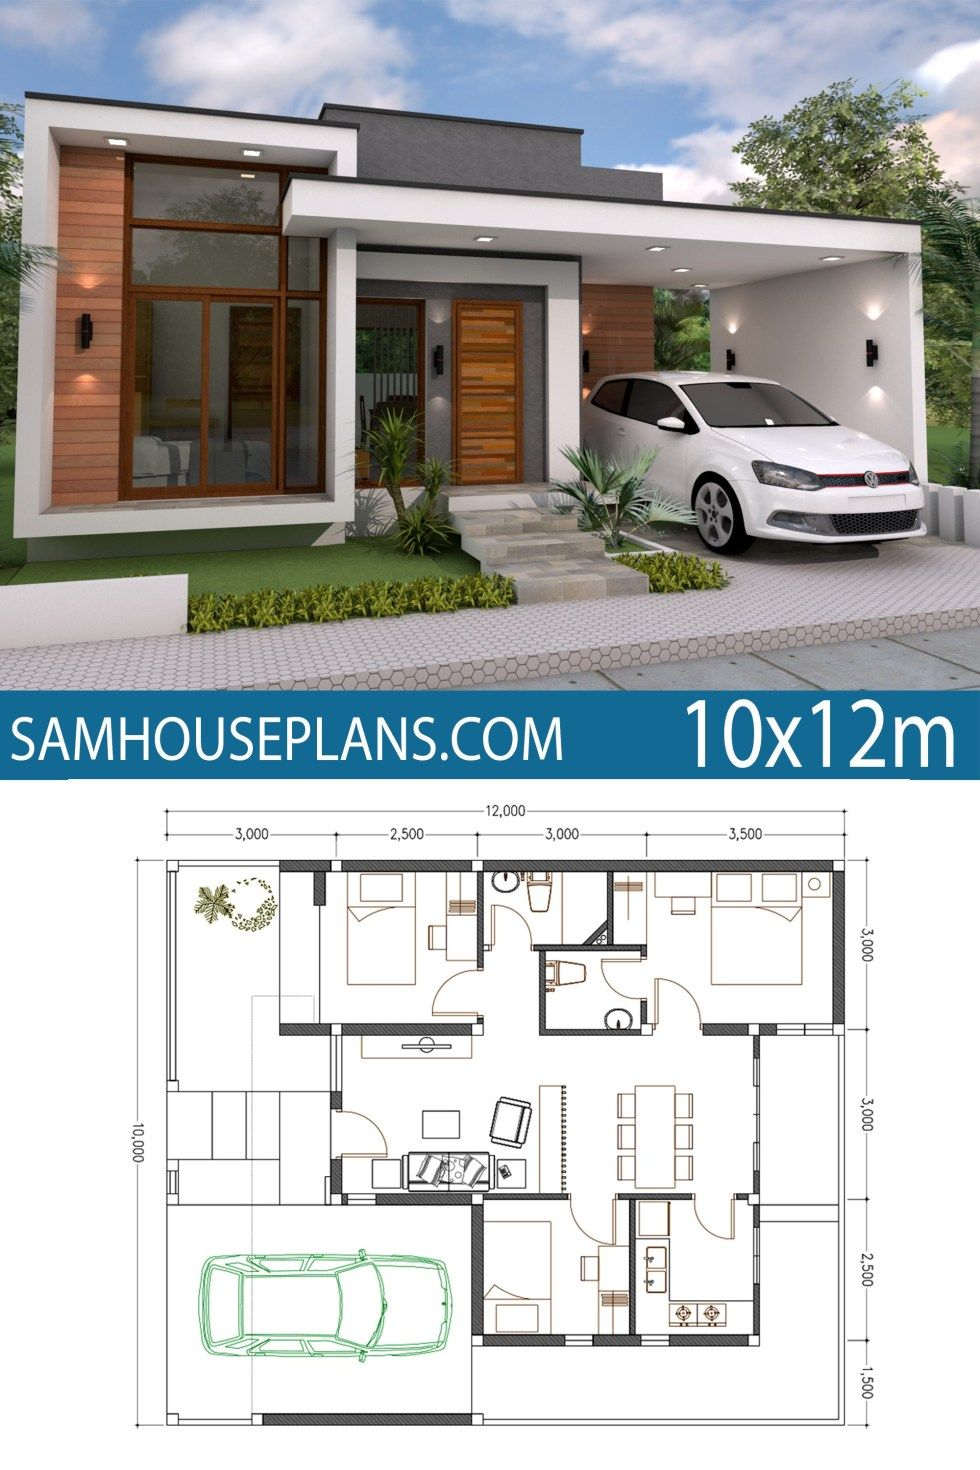 Home Plan 10x12m 3 Bedrooms Sam House Plans House Construction Plan Simple House Design Bungalow House Plans